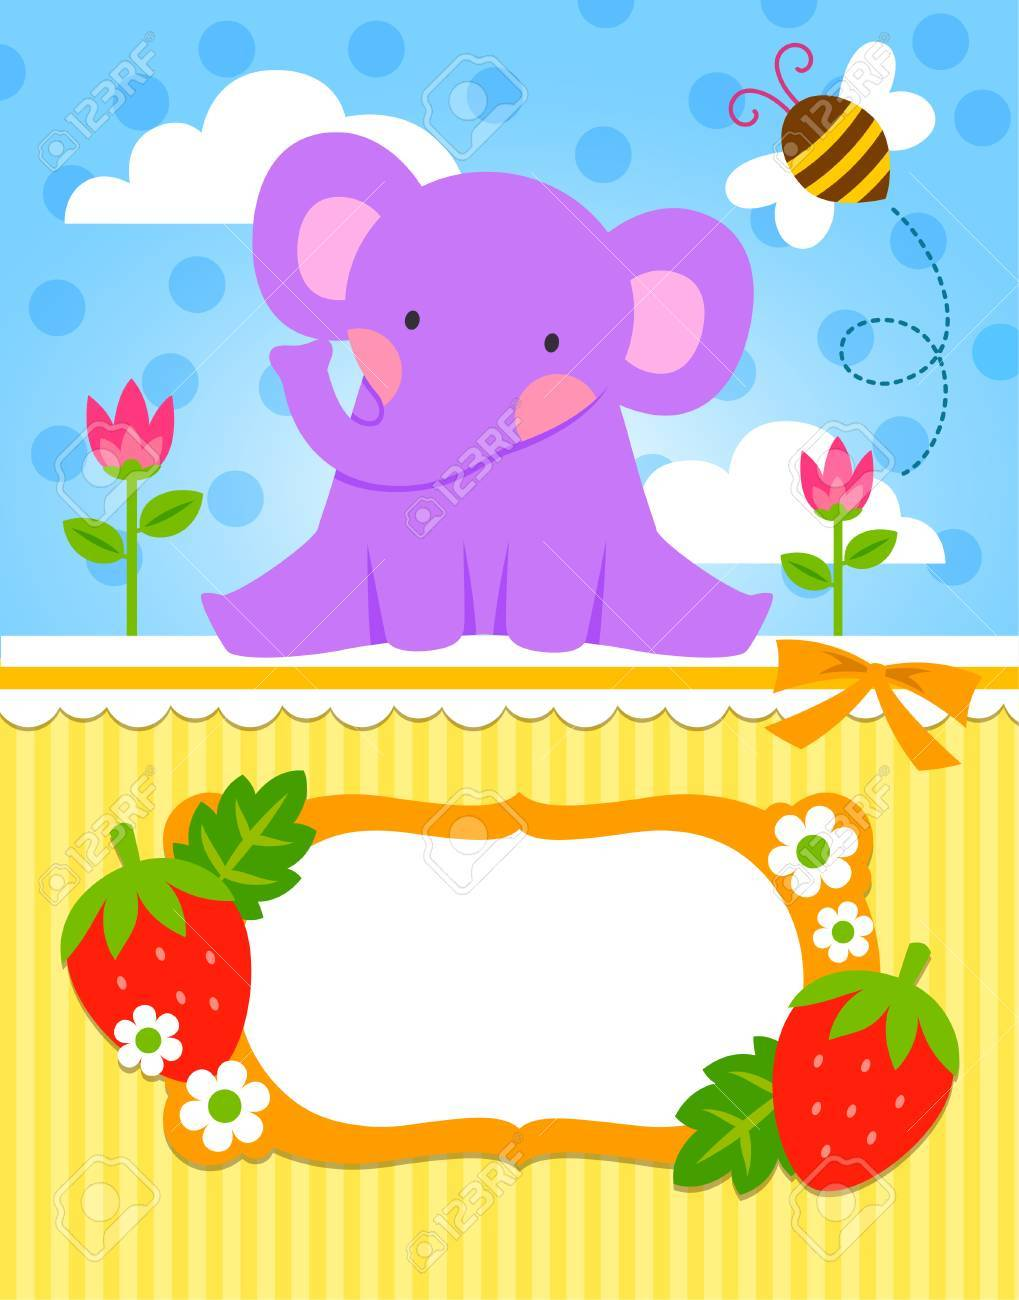 greeting card template with a cute baby elephant royalty free